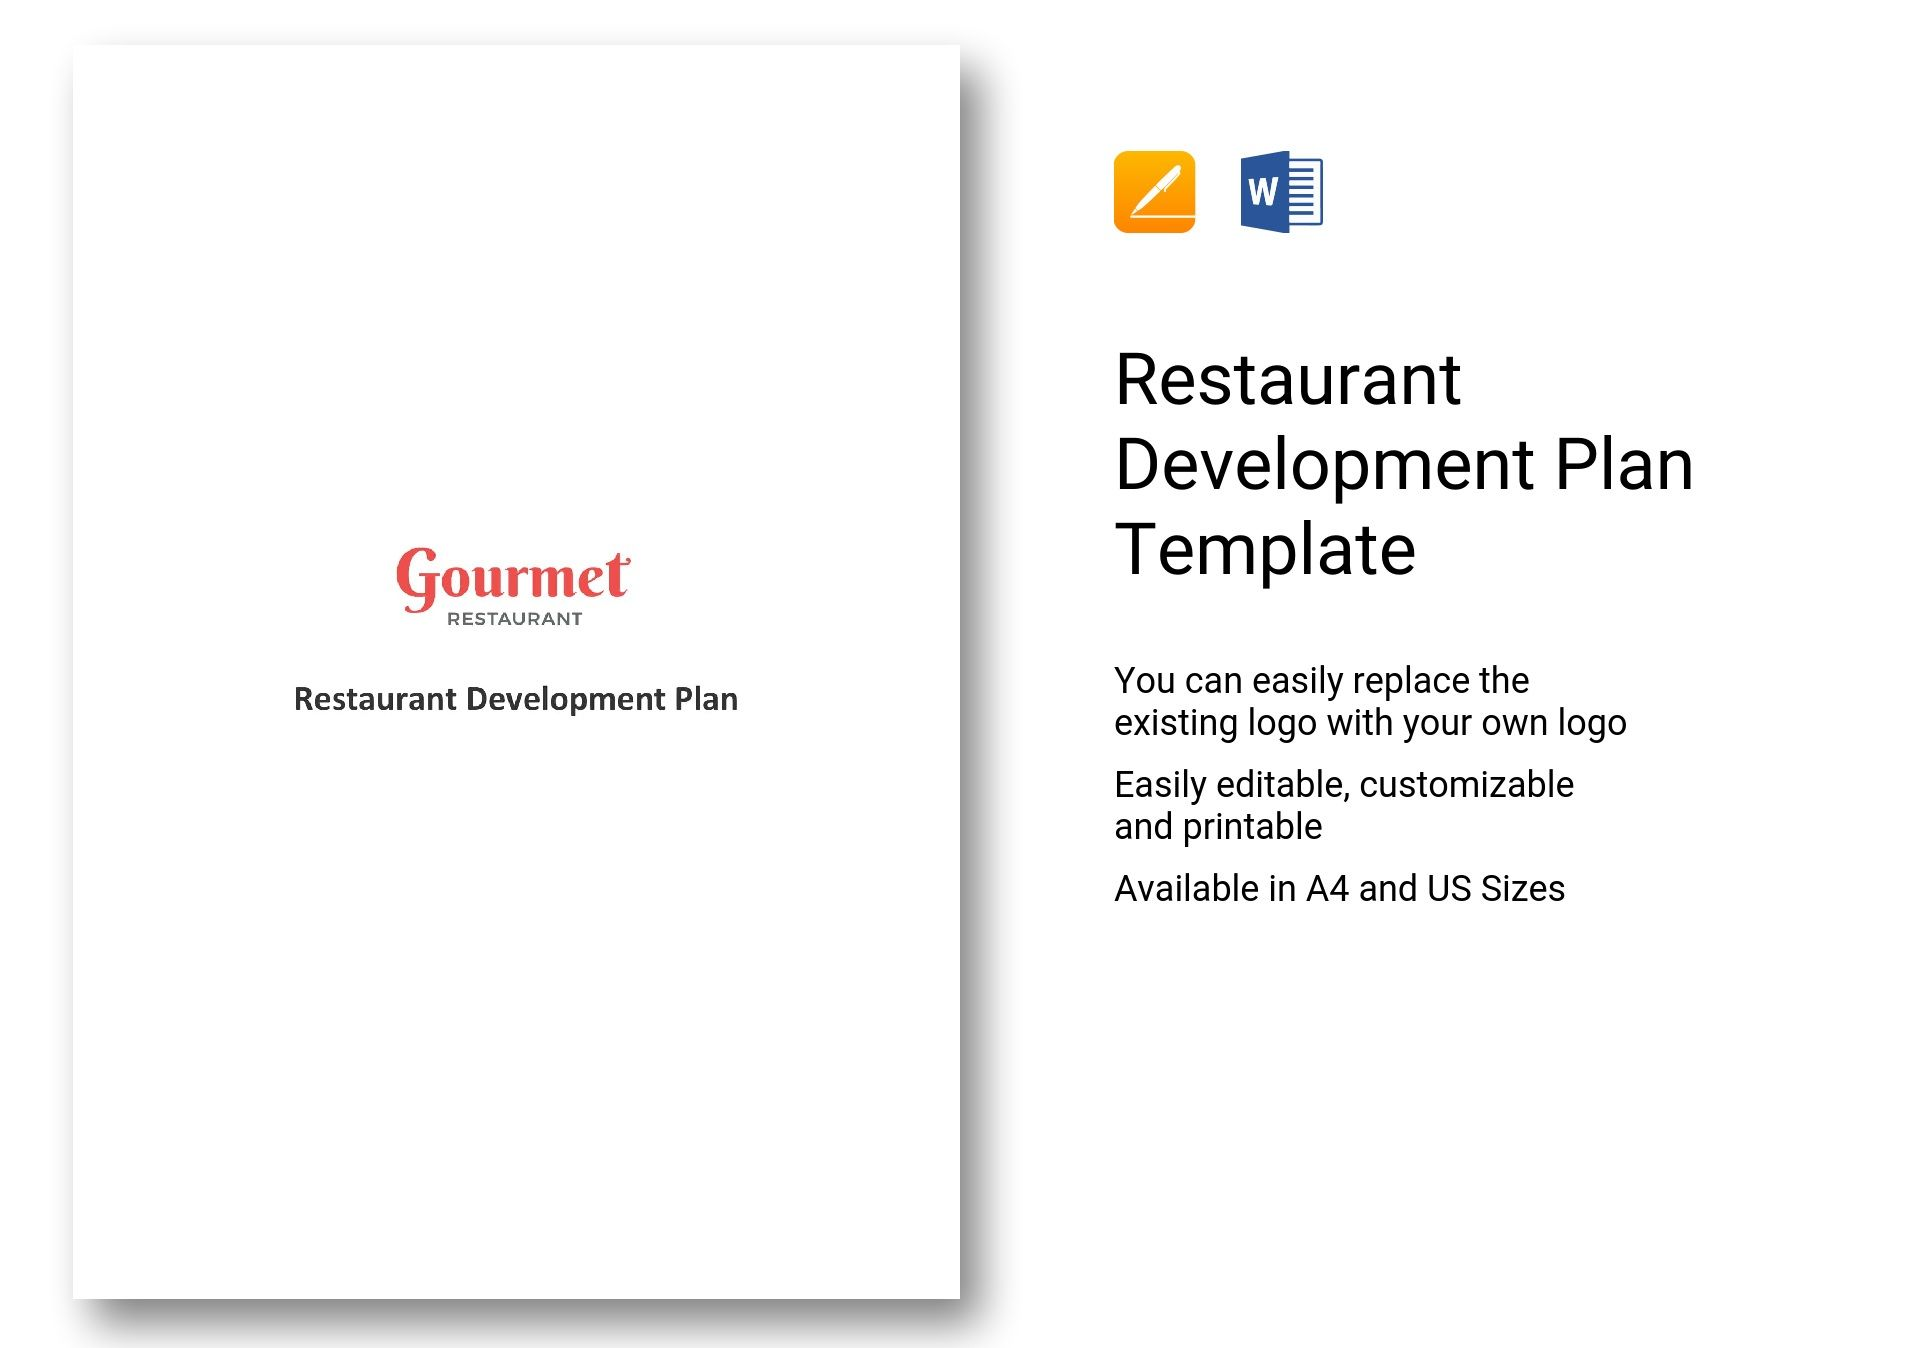 Restaurant Development Plan